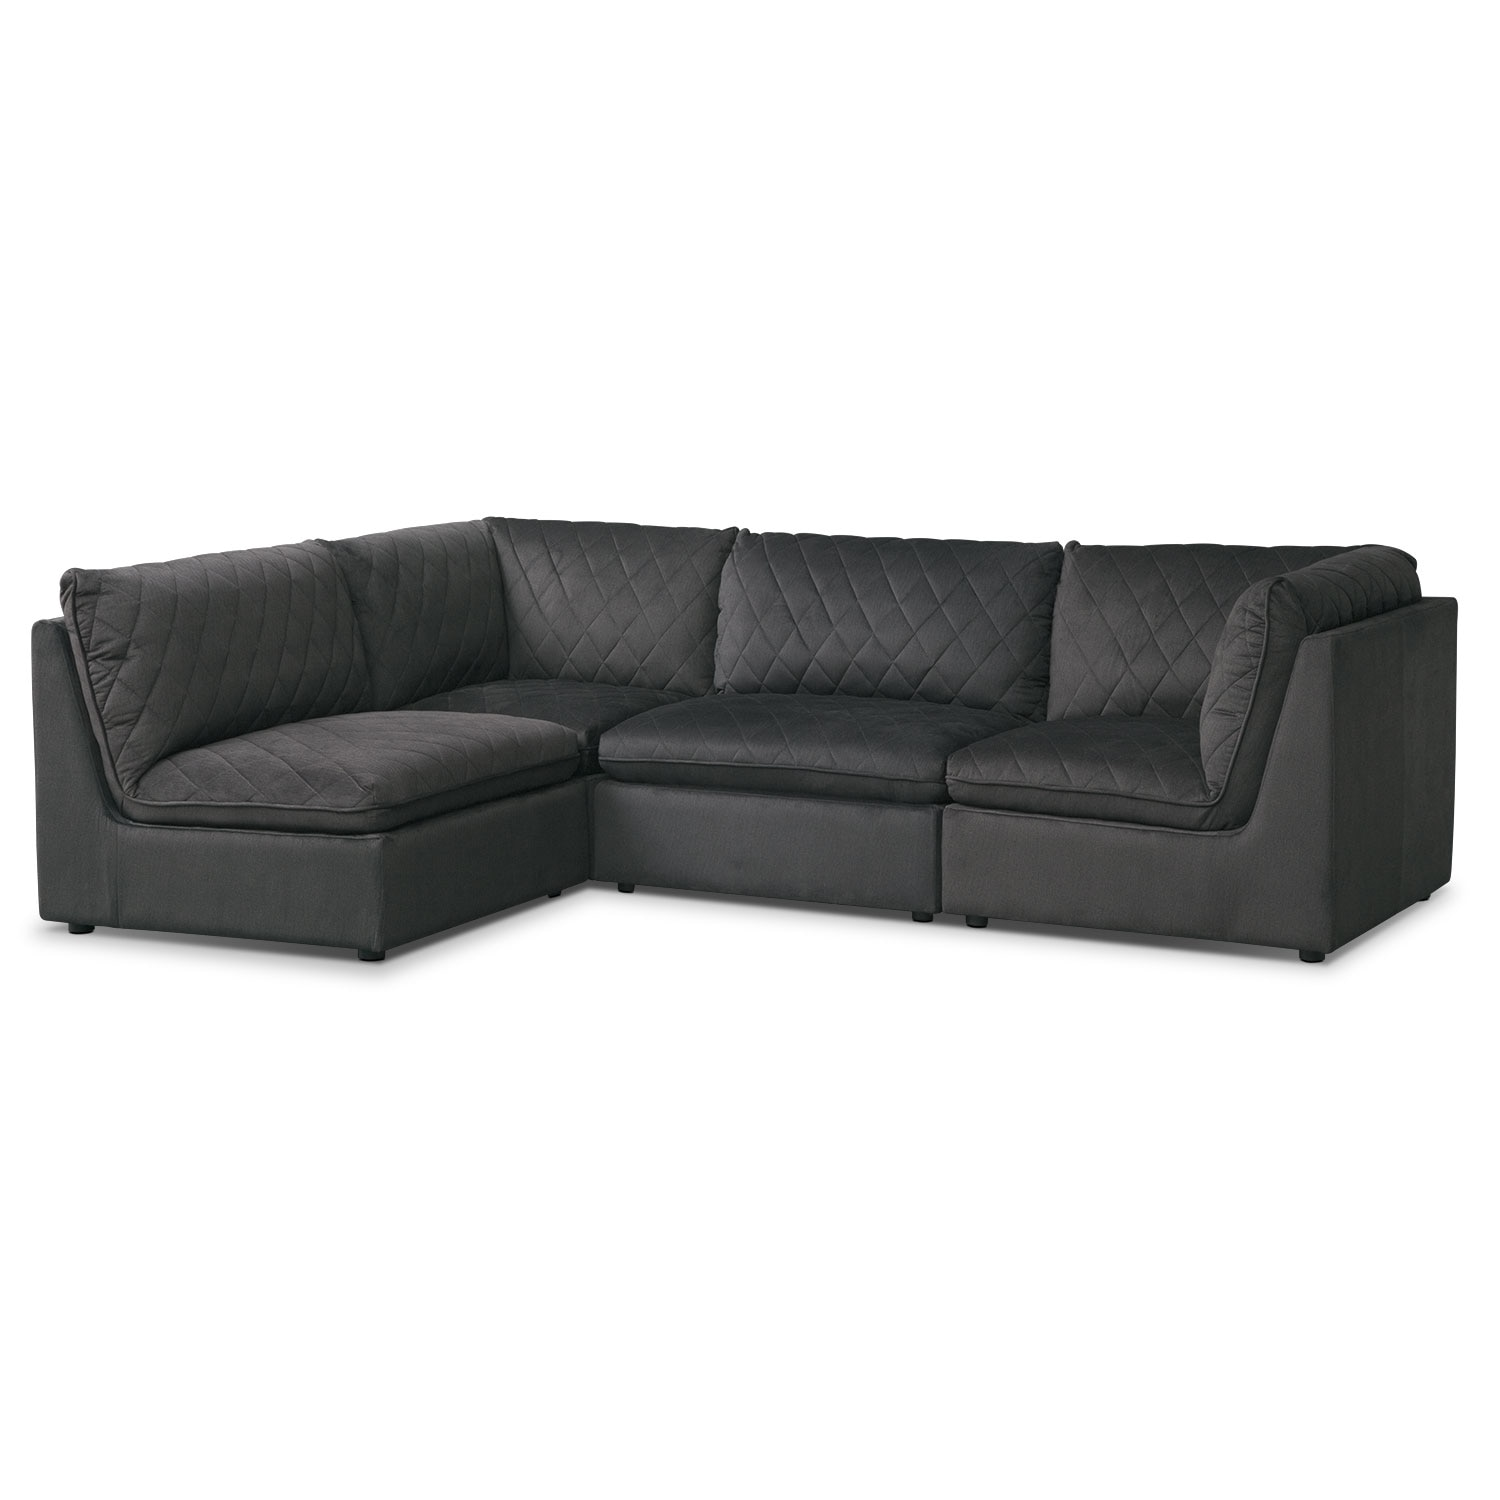 Living Room Furniture - Coco Charcoal 4 Pc. Sectional